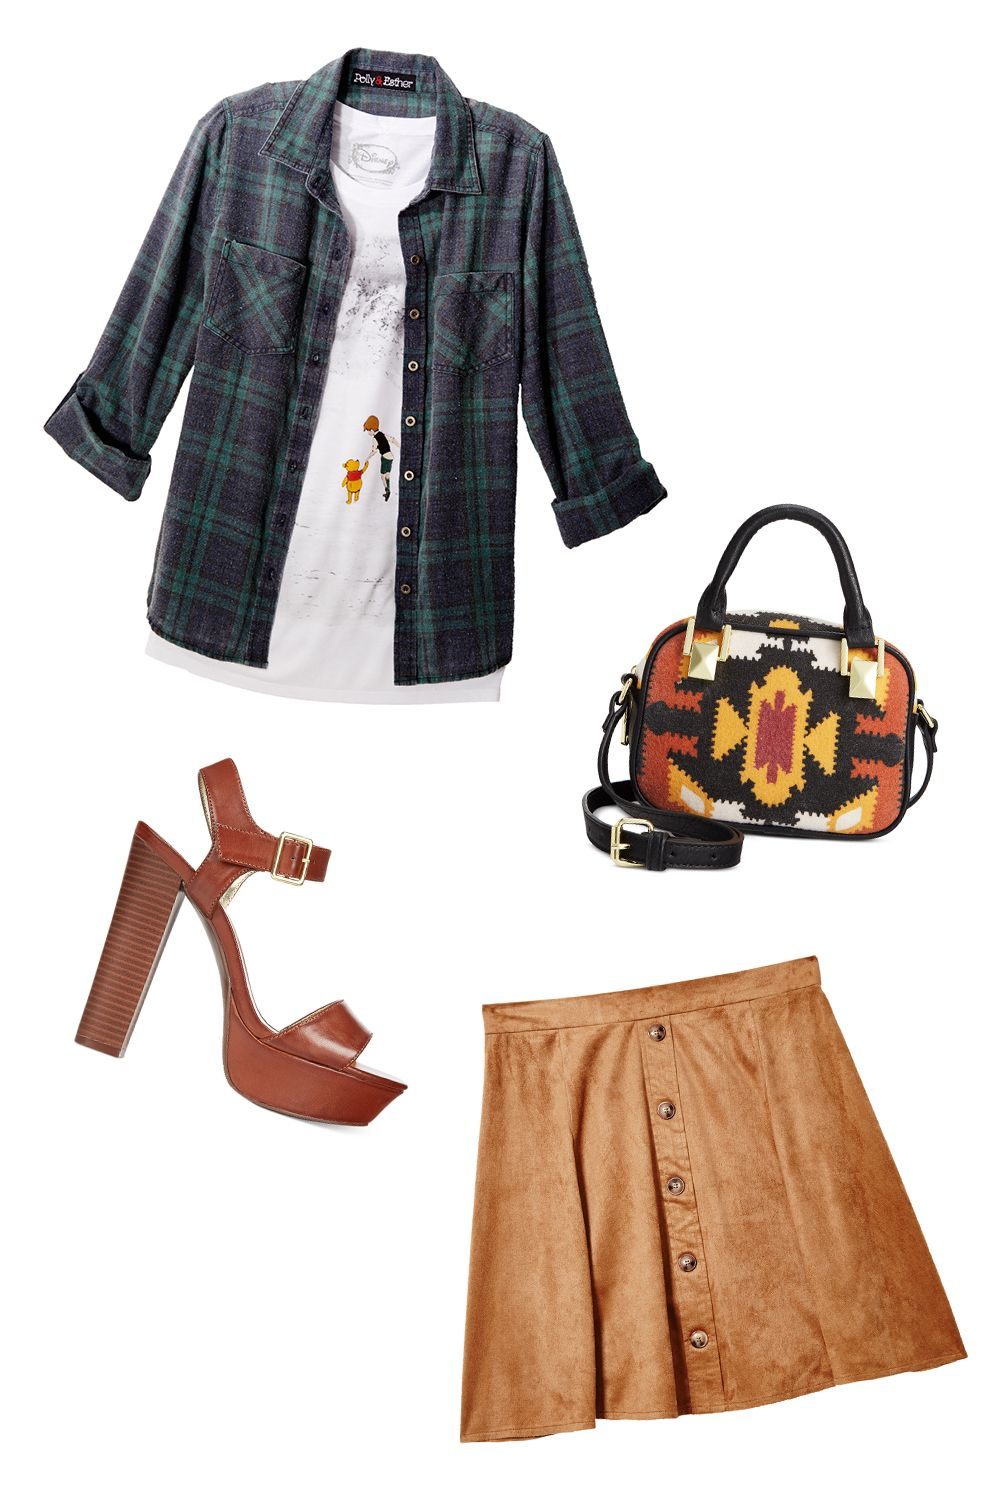 "<p><strong>The Look: </strong>Adorably Fashionable </p><p>On breezy autumn days, pair a cute, neutral skirt with a warmer flannel top and a patterned purse. And a graphic tee featuring none other than Winnie the Pooh? That's just a (huggable) bonus! </p><p><i>All items available at <a href=""http://www1.macys.com/shop/junior-clothing/shop-all-juniors-apparel?id=60983&edge=hybrid"" target=""_blank"">macys.com</a>.</i> </p>"